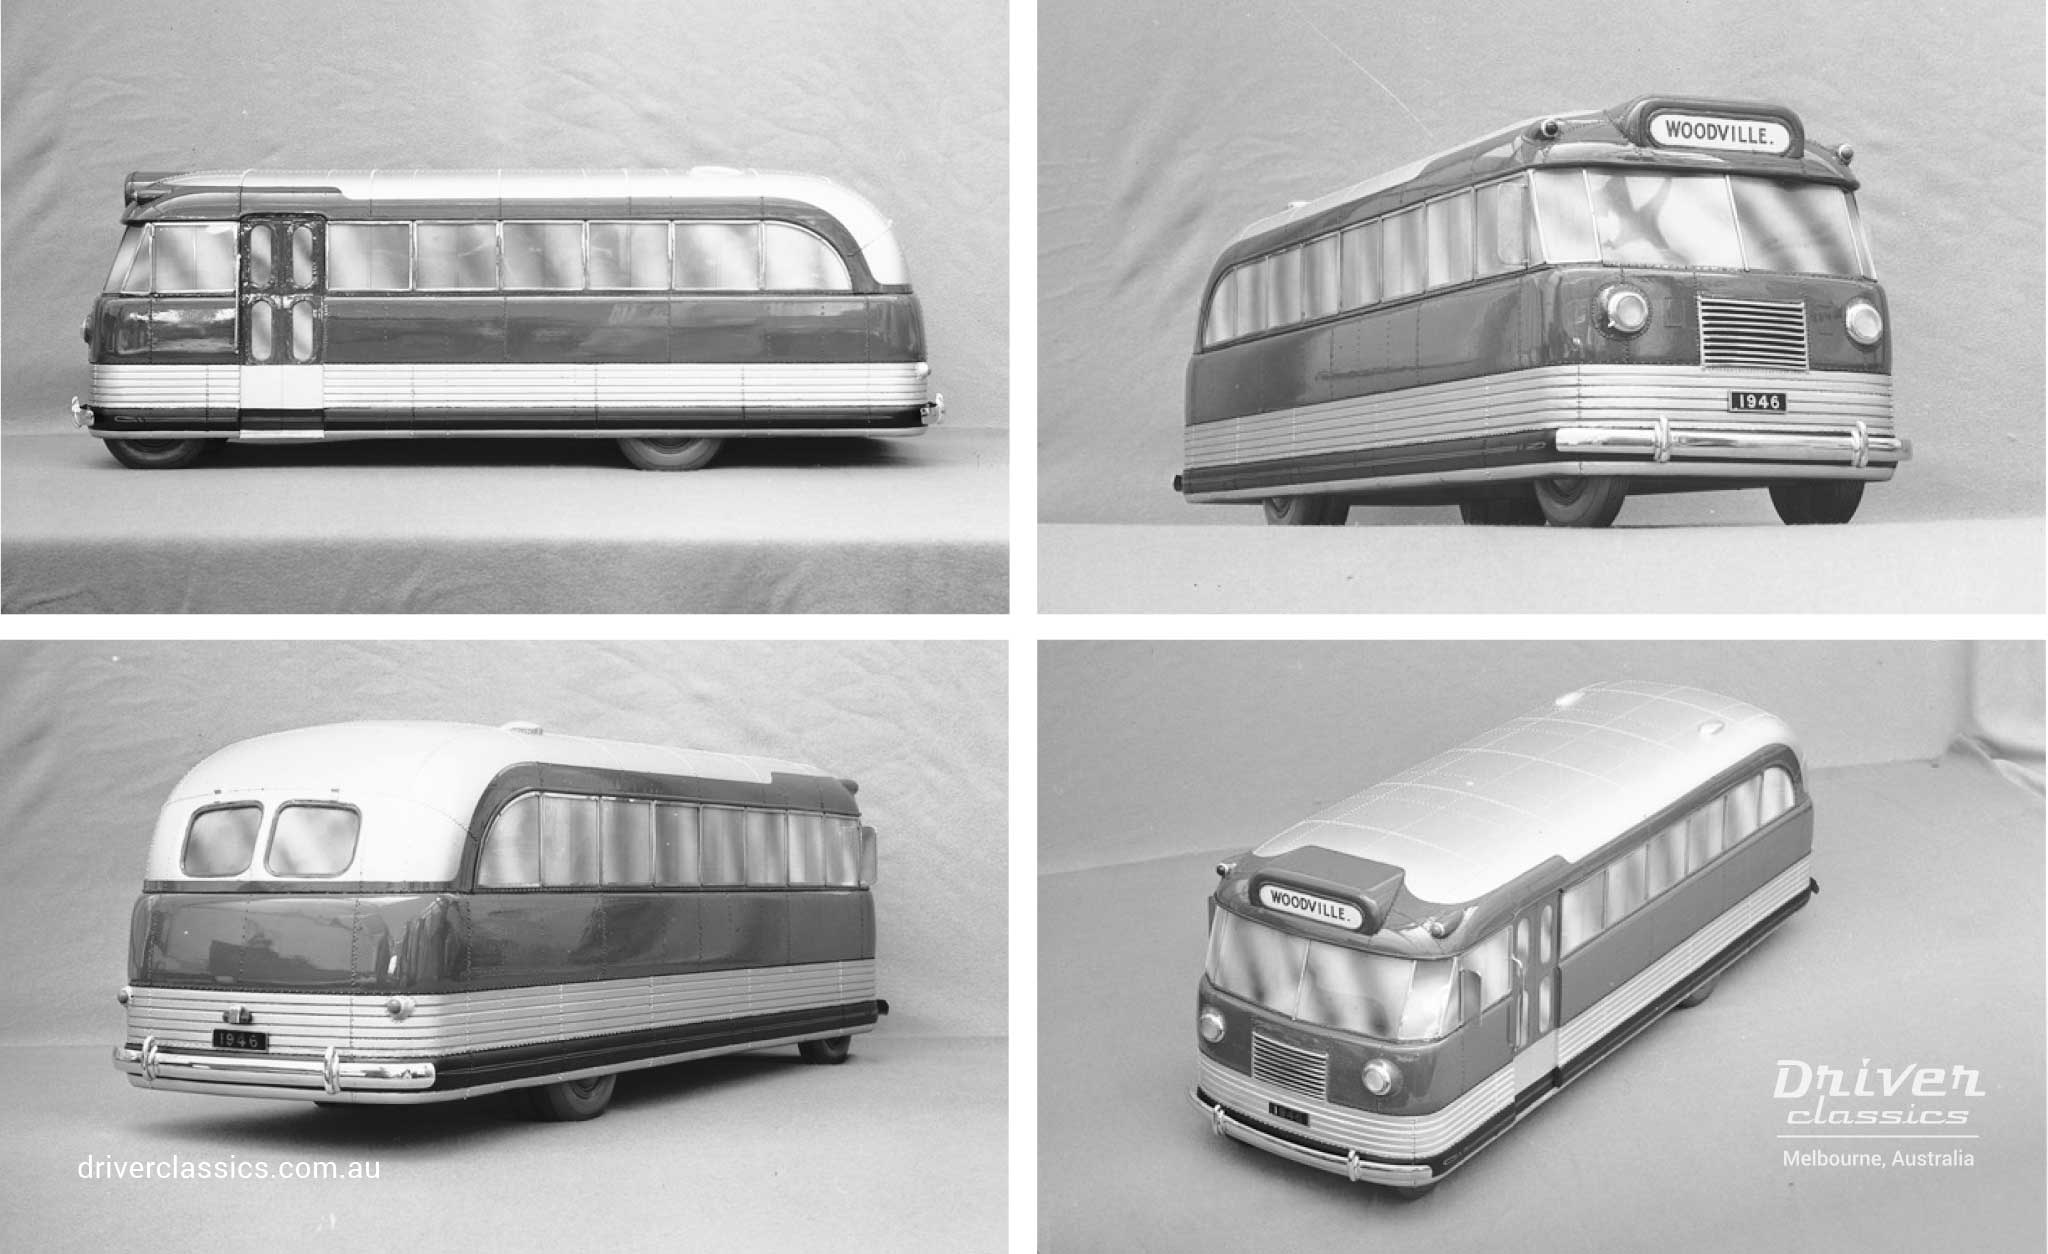 Bedford OB bus scale model built in 1946 by General Motors